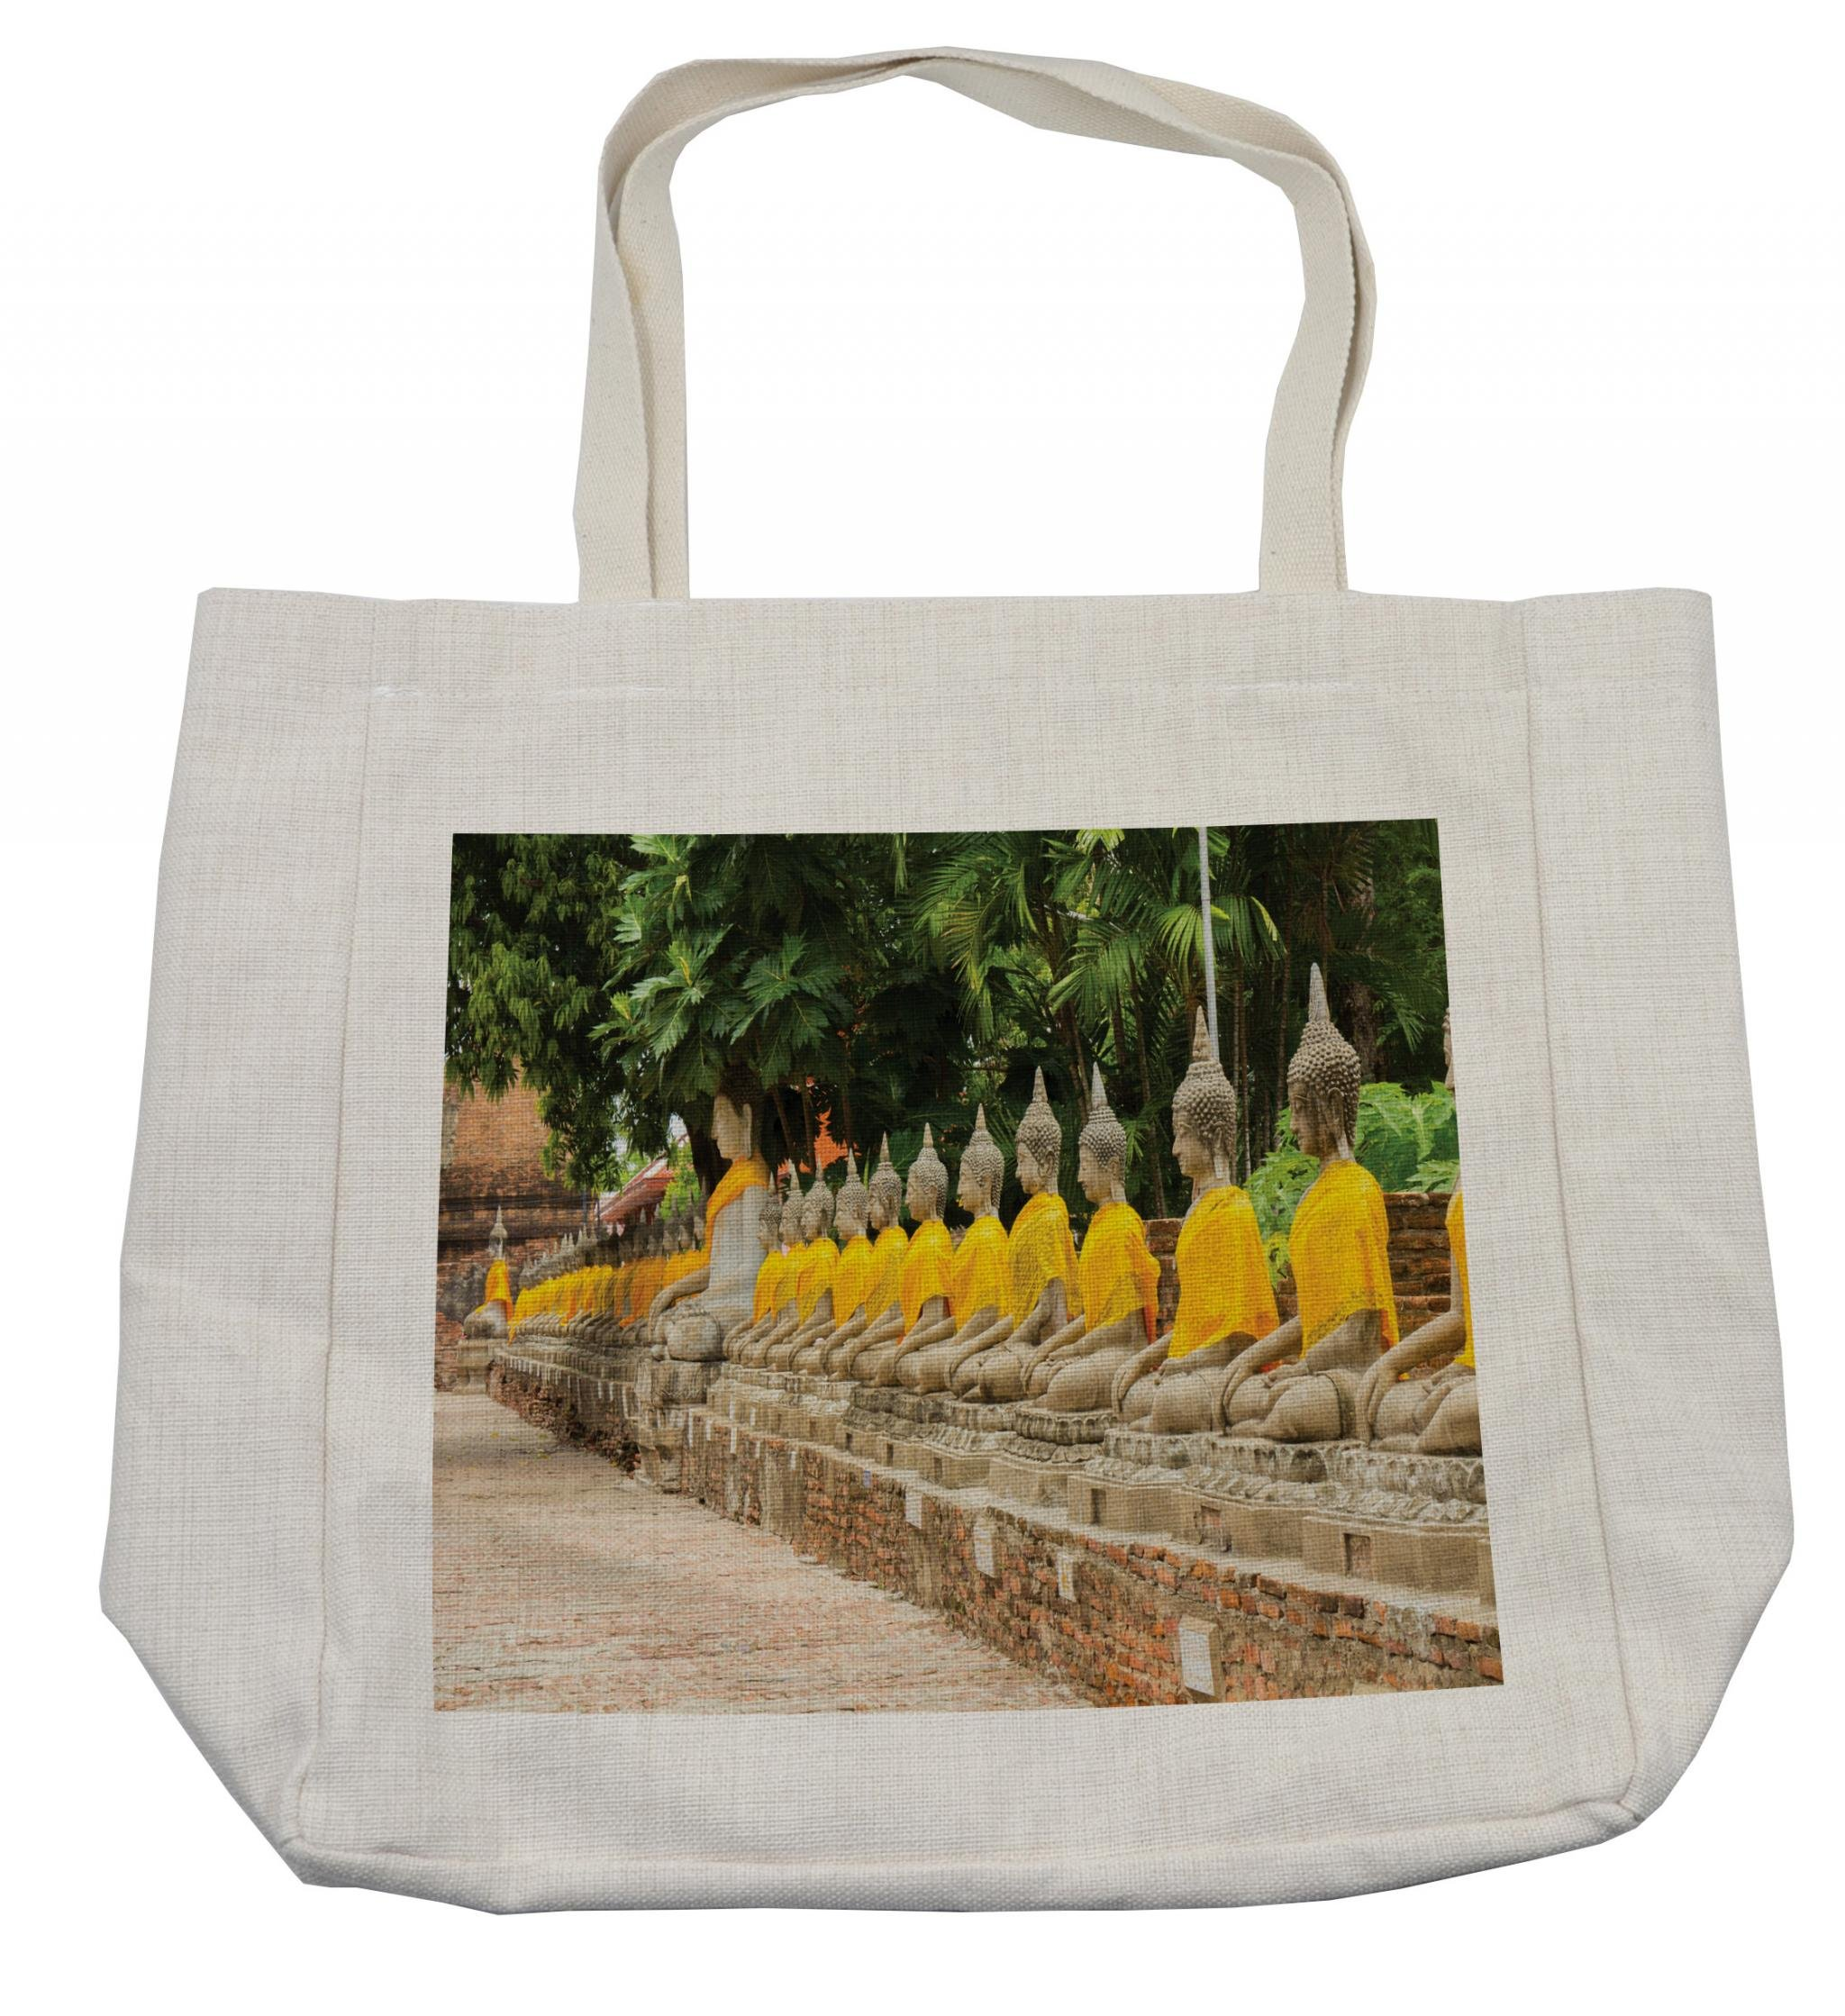 Ambesonne Asian Shopping Bag, Picture of Aligned Religious Statues in Thailand Traditional Thai Design, Eco-Friendly Reusable Bag for Groceries Beach Travel School & More, Cream